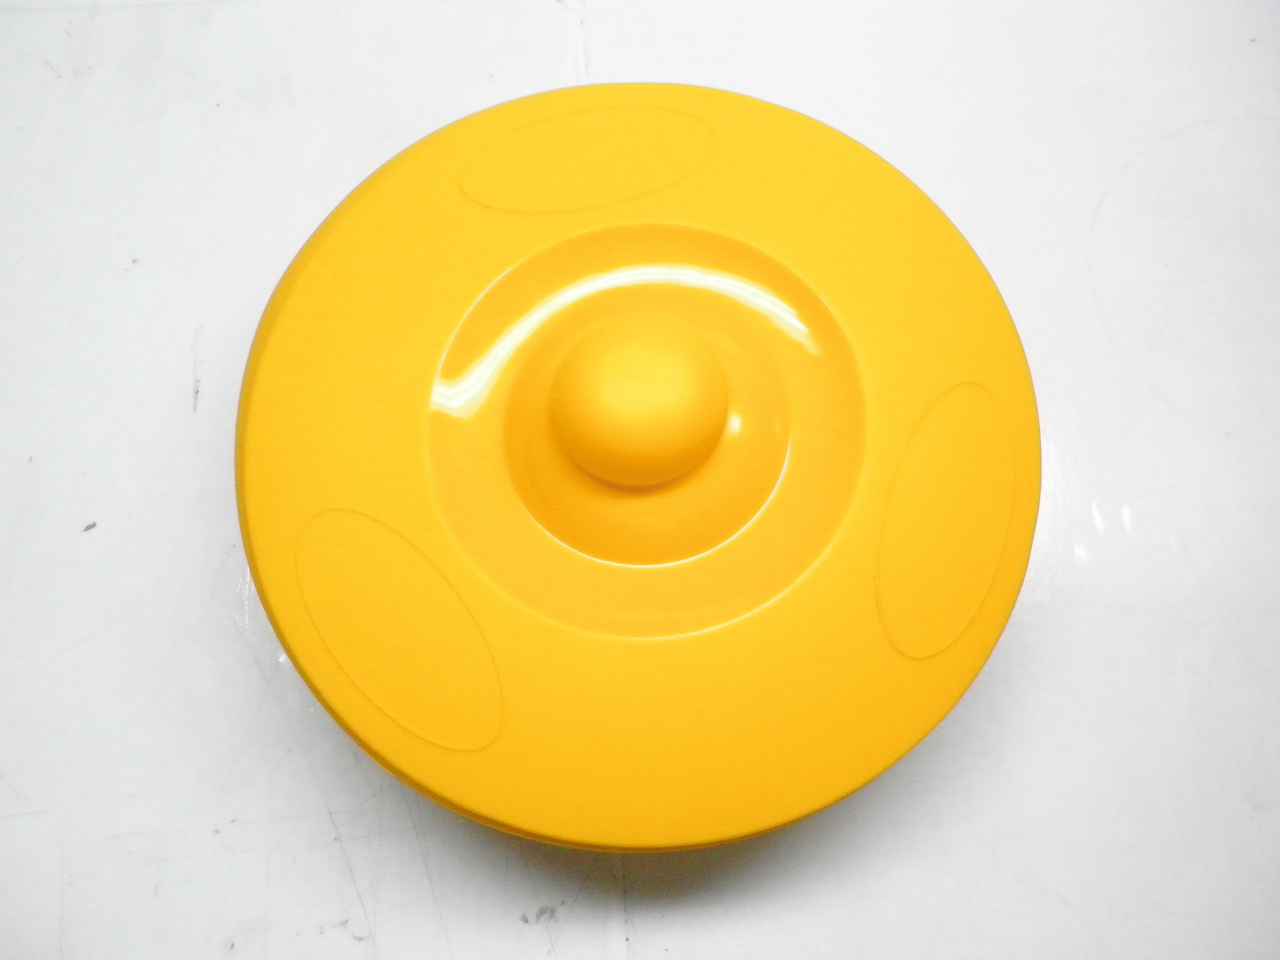 http://www.refinehksilicone.cn/data/images/product/20180418100301_871.jpg